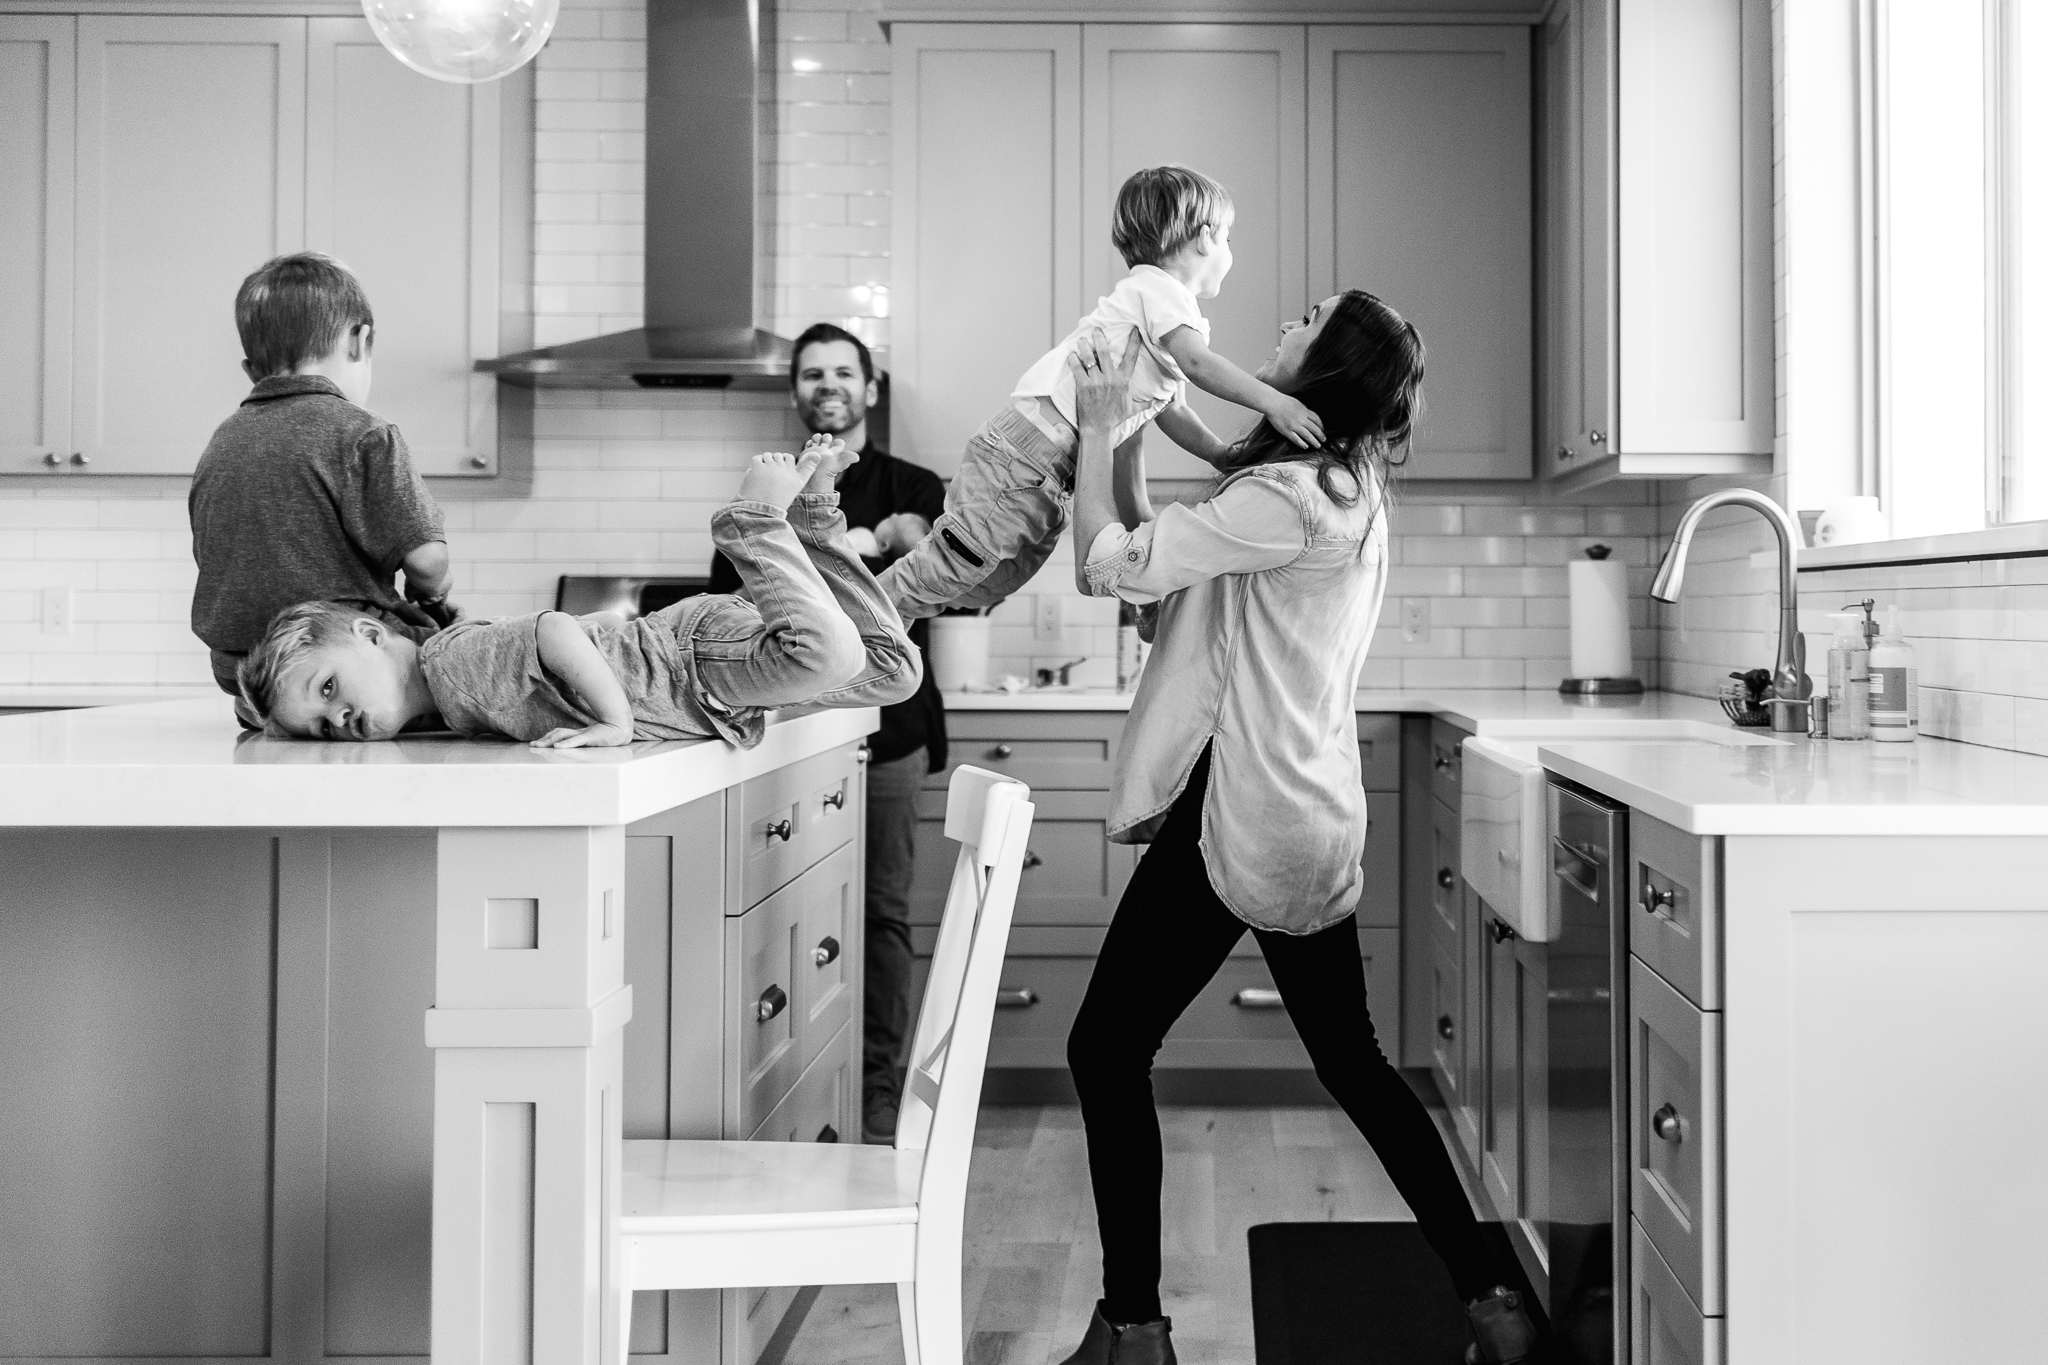 Brothers playing on kitchen counter - Utah family lifestyle photographer